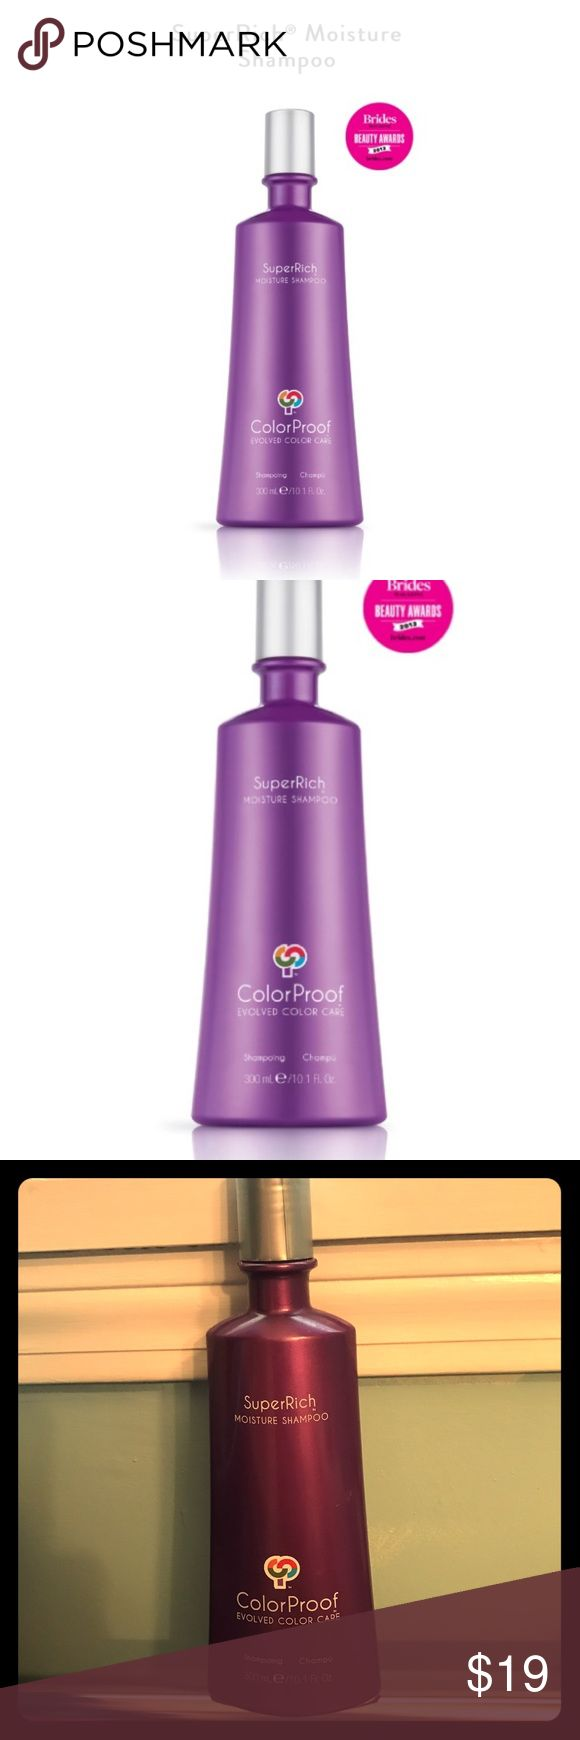 SuperRich Moisture Shampoo by ColorProof SALON Exl BNIB never used. Salon Exclusive. Nourish tresses with lightweight moisture while gently cleansing. This breakthrough formula envelopes hair in a luxurious billowy lather that rinses clean, leaving color  http://www.erodethefat.com/blog/lean-belly/